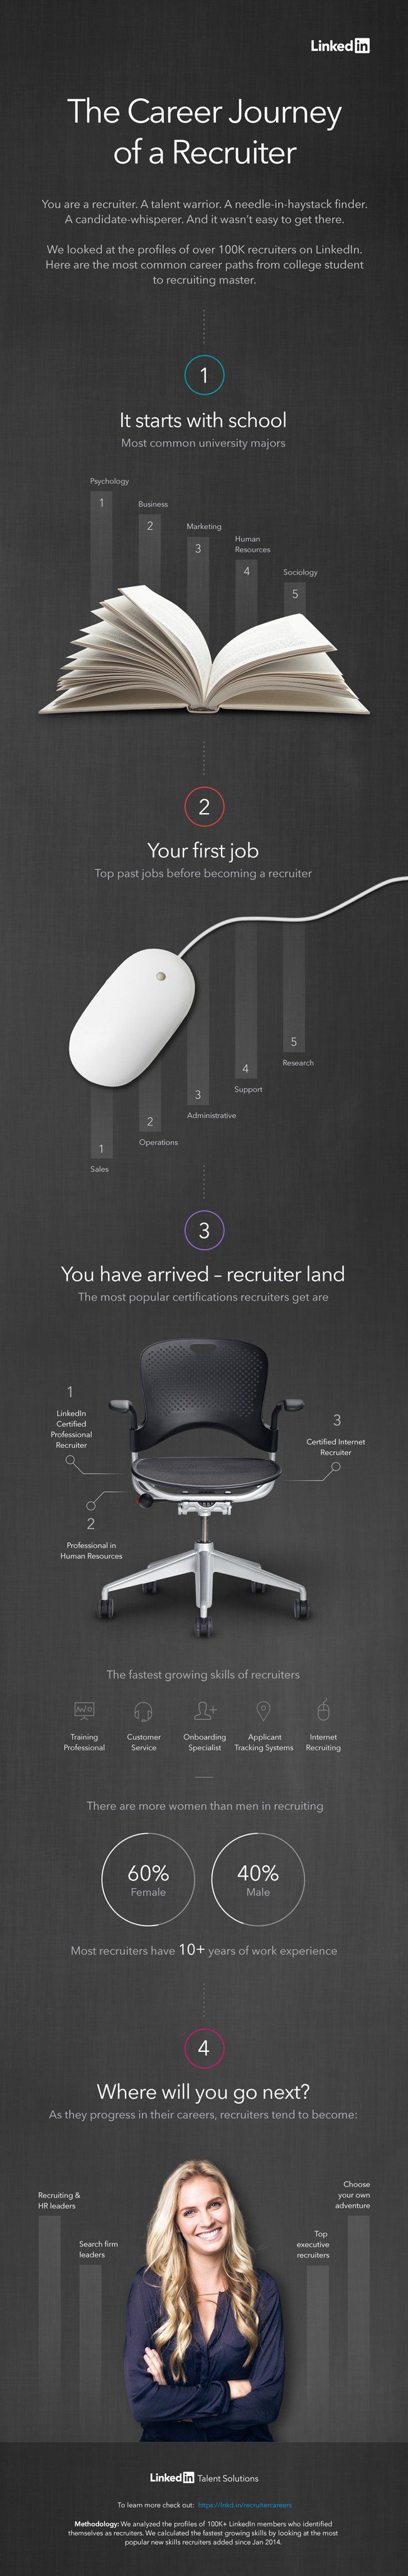 here is what it takes to become a recruiter infographic here is what it takes to become a recruiter infographic linkedin talent blog